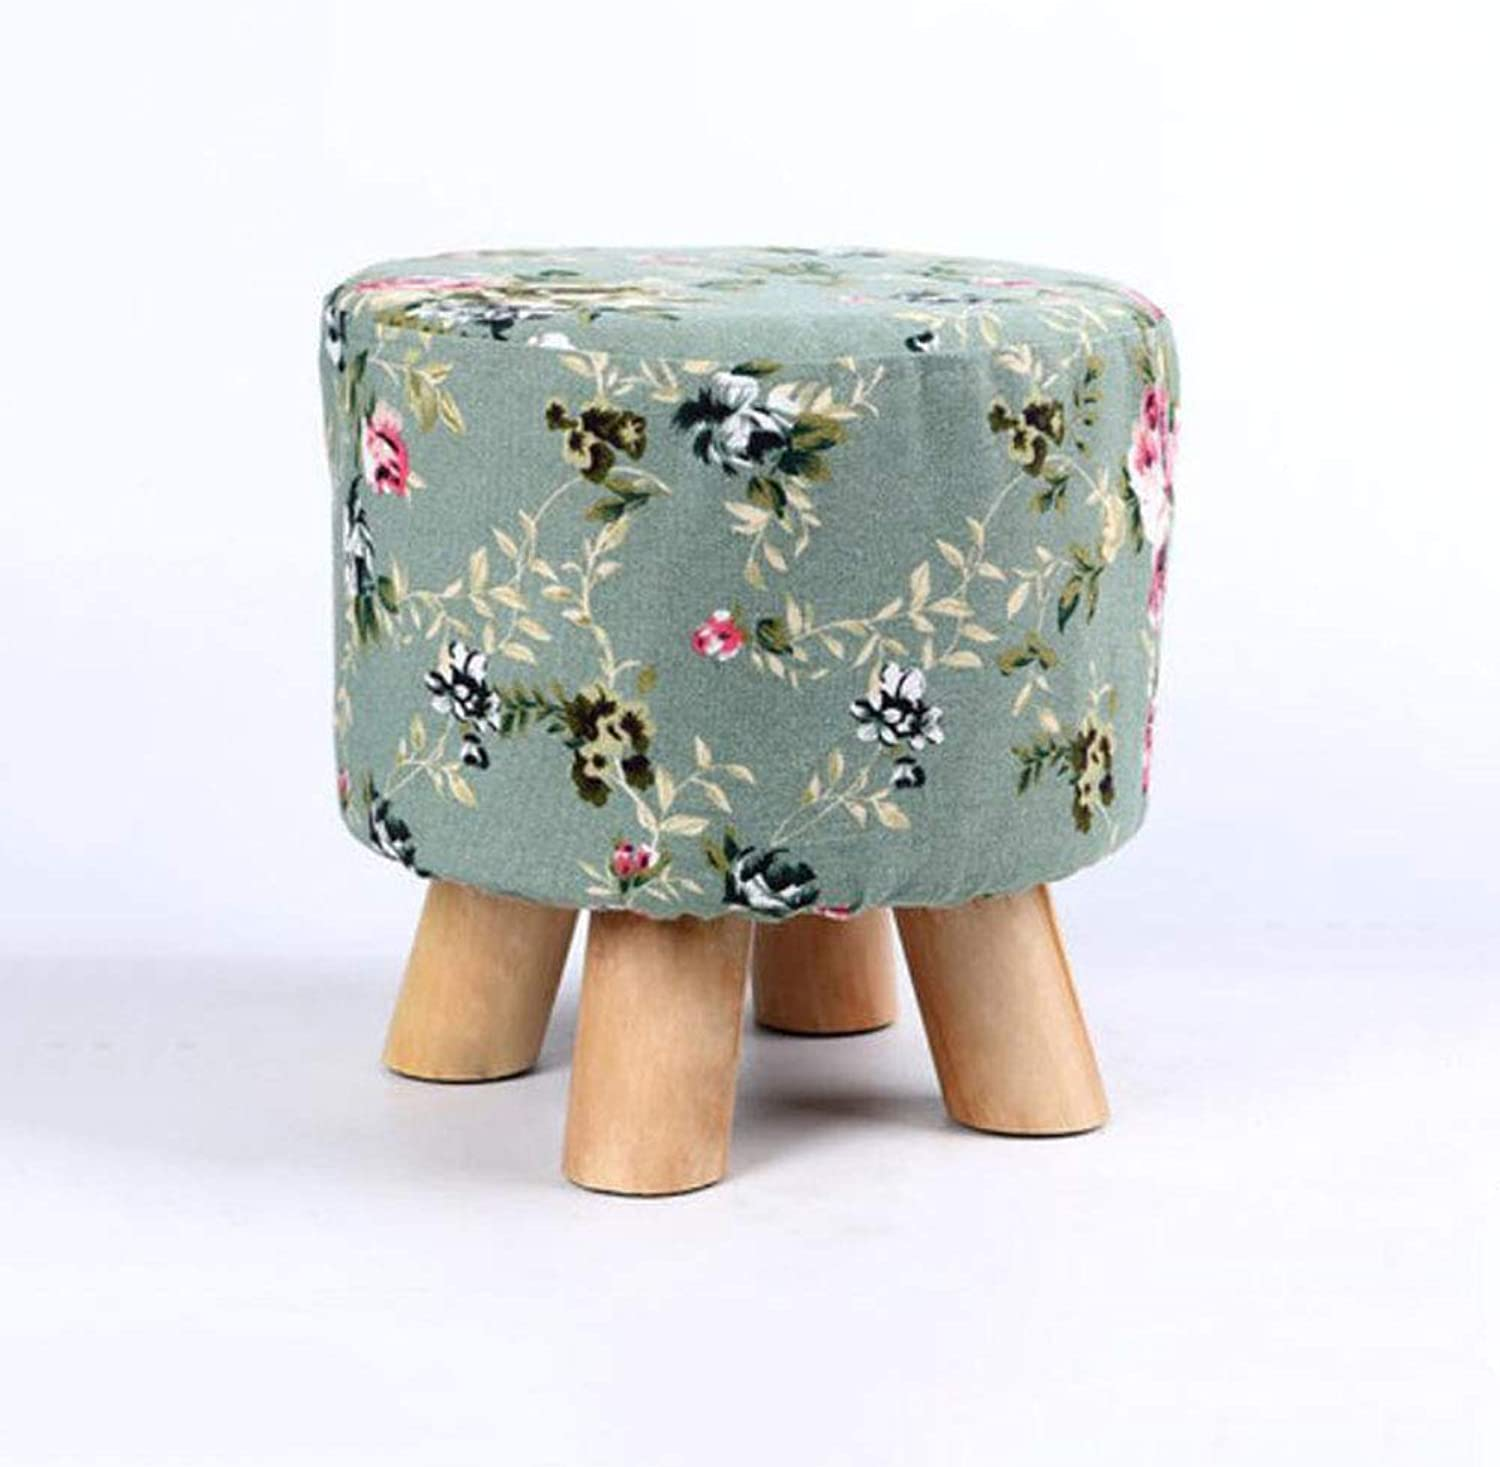 FH Change shoes Stool Solid Wood Fabric Sofa Stool Simple Fashion Wear shoes Bench Coffee Table Living Room Small Stool FH (color   A)